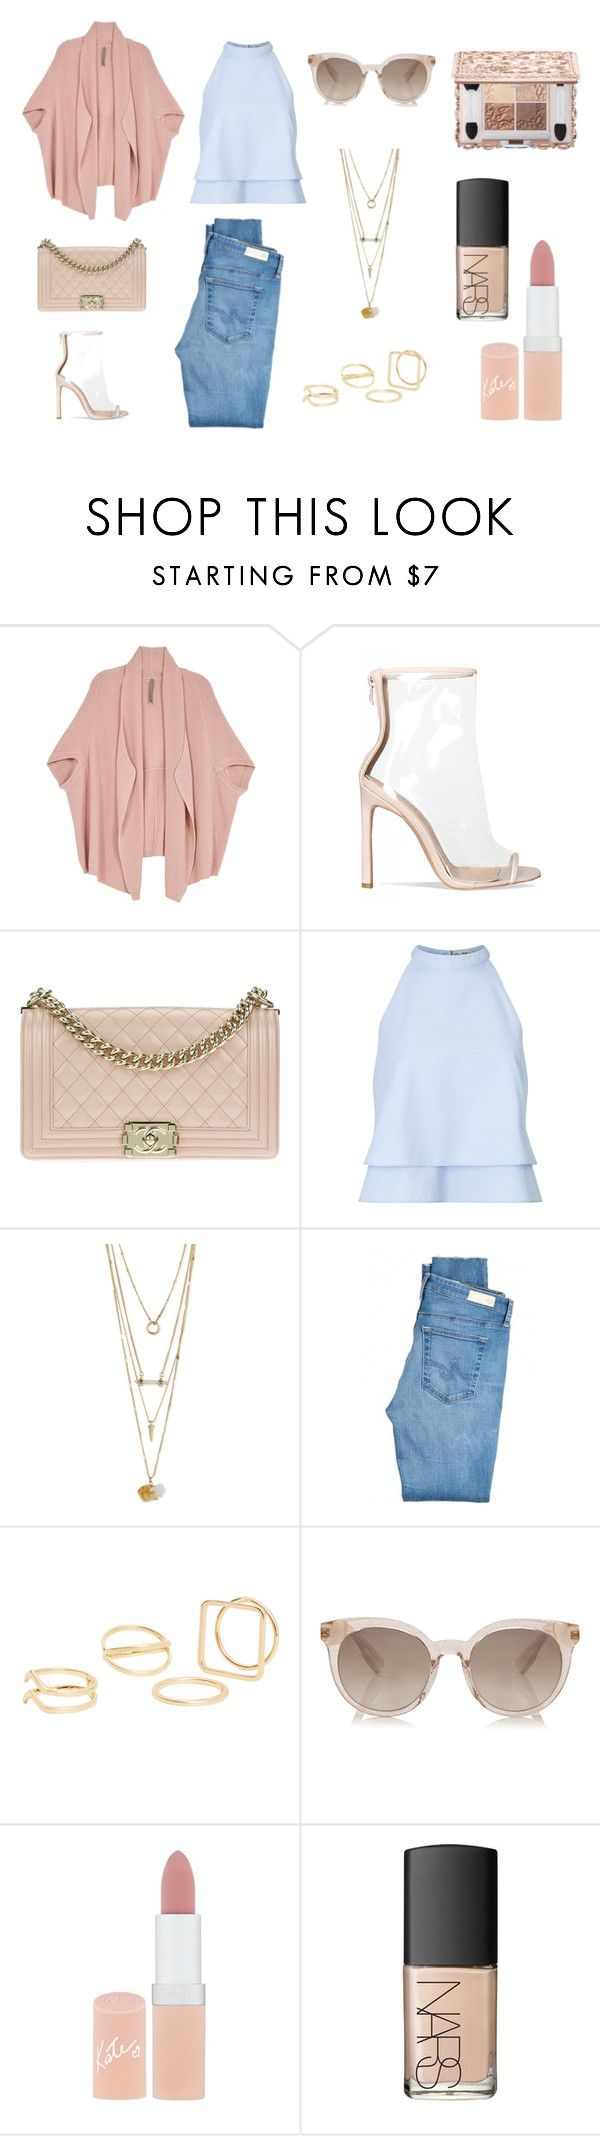 """""""Woman's style"""" by tatyana-yurasova on Polyvore featuring мода, Melissa McCarthy Seven7, Chanel, Miss Selfridge, AG Adriano Goldschmied, MANGO, Rimmel, NARS Cosmetics и plus size clothing"""